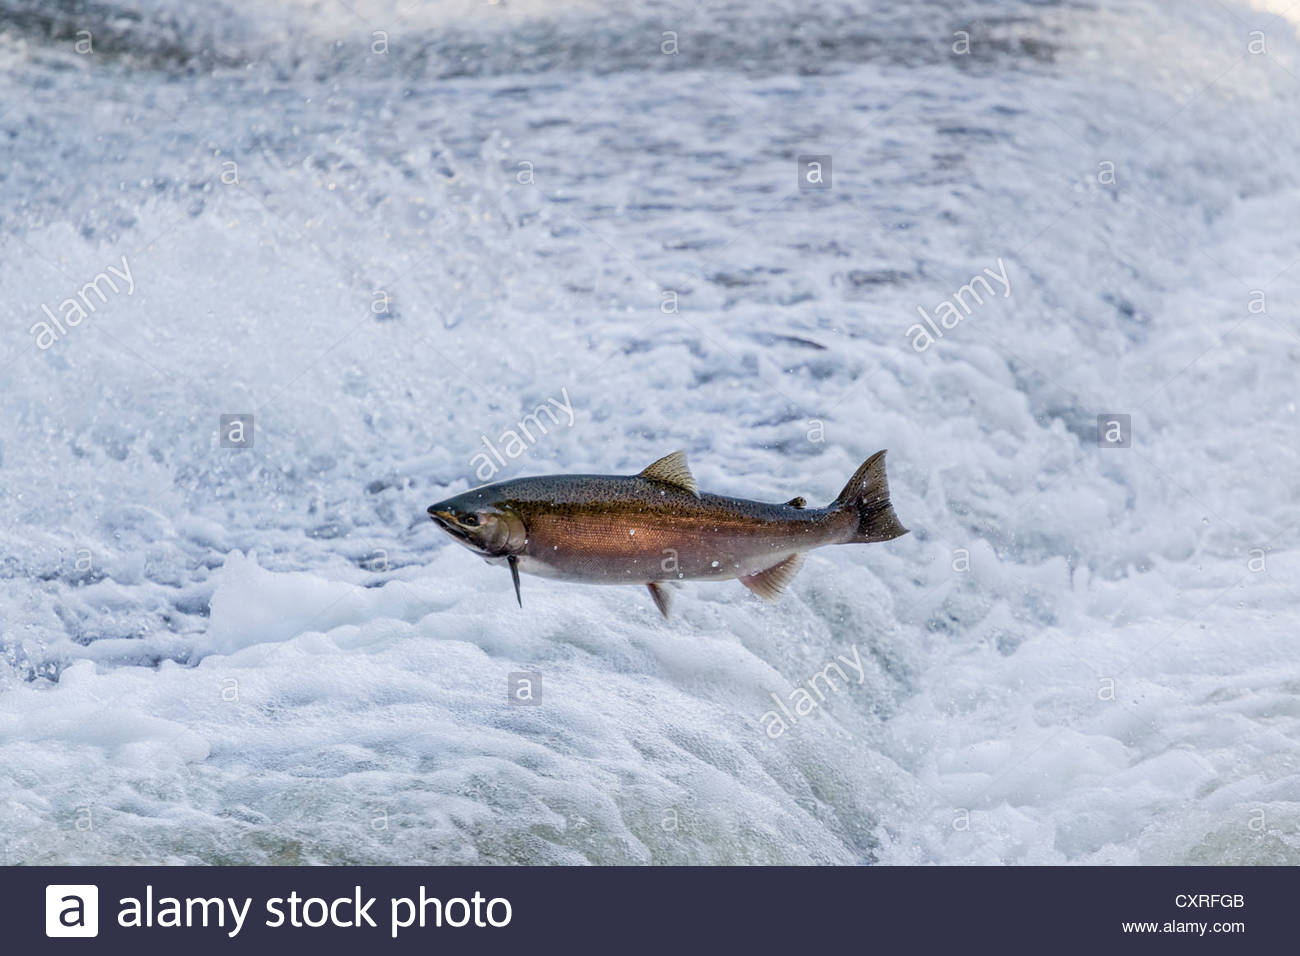 lake-ontario-chinook-salmon-attempting-l